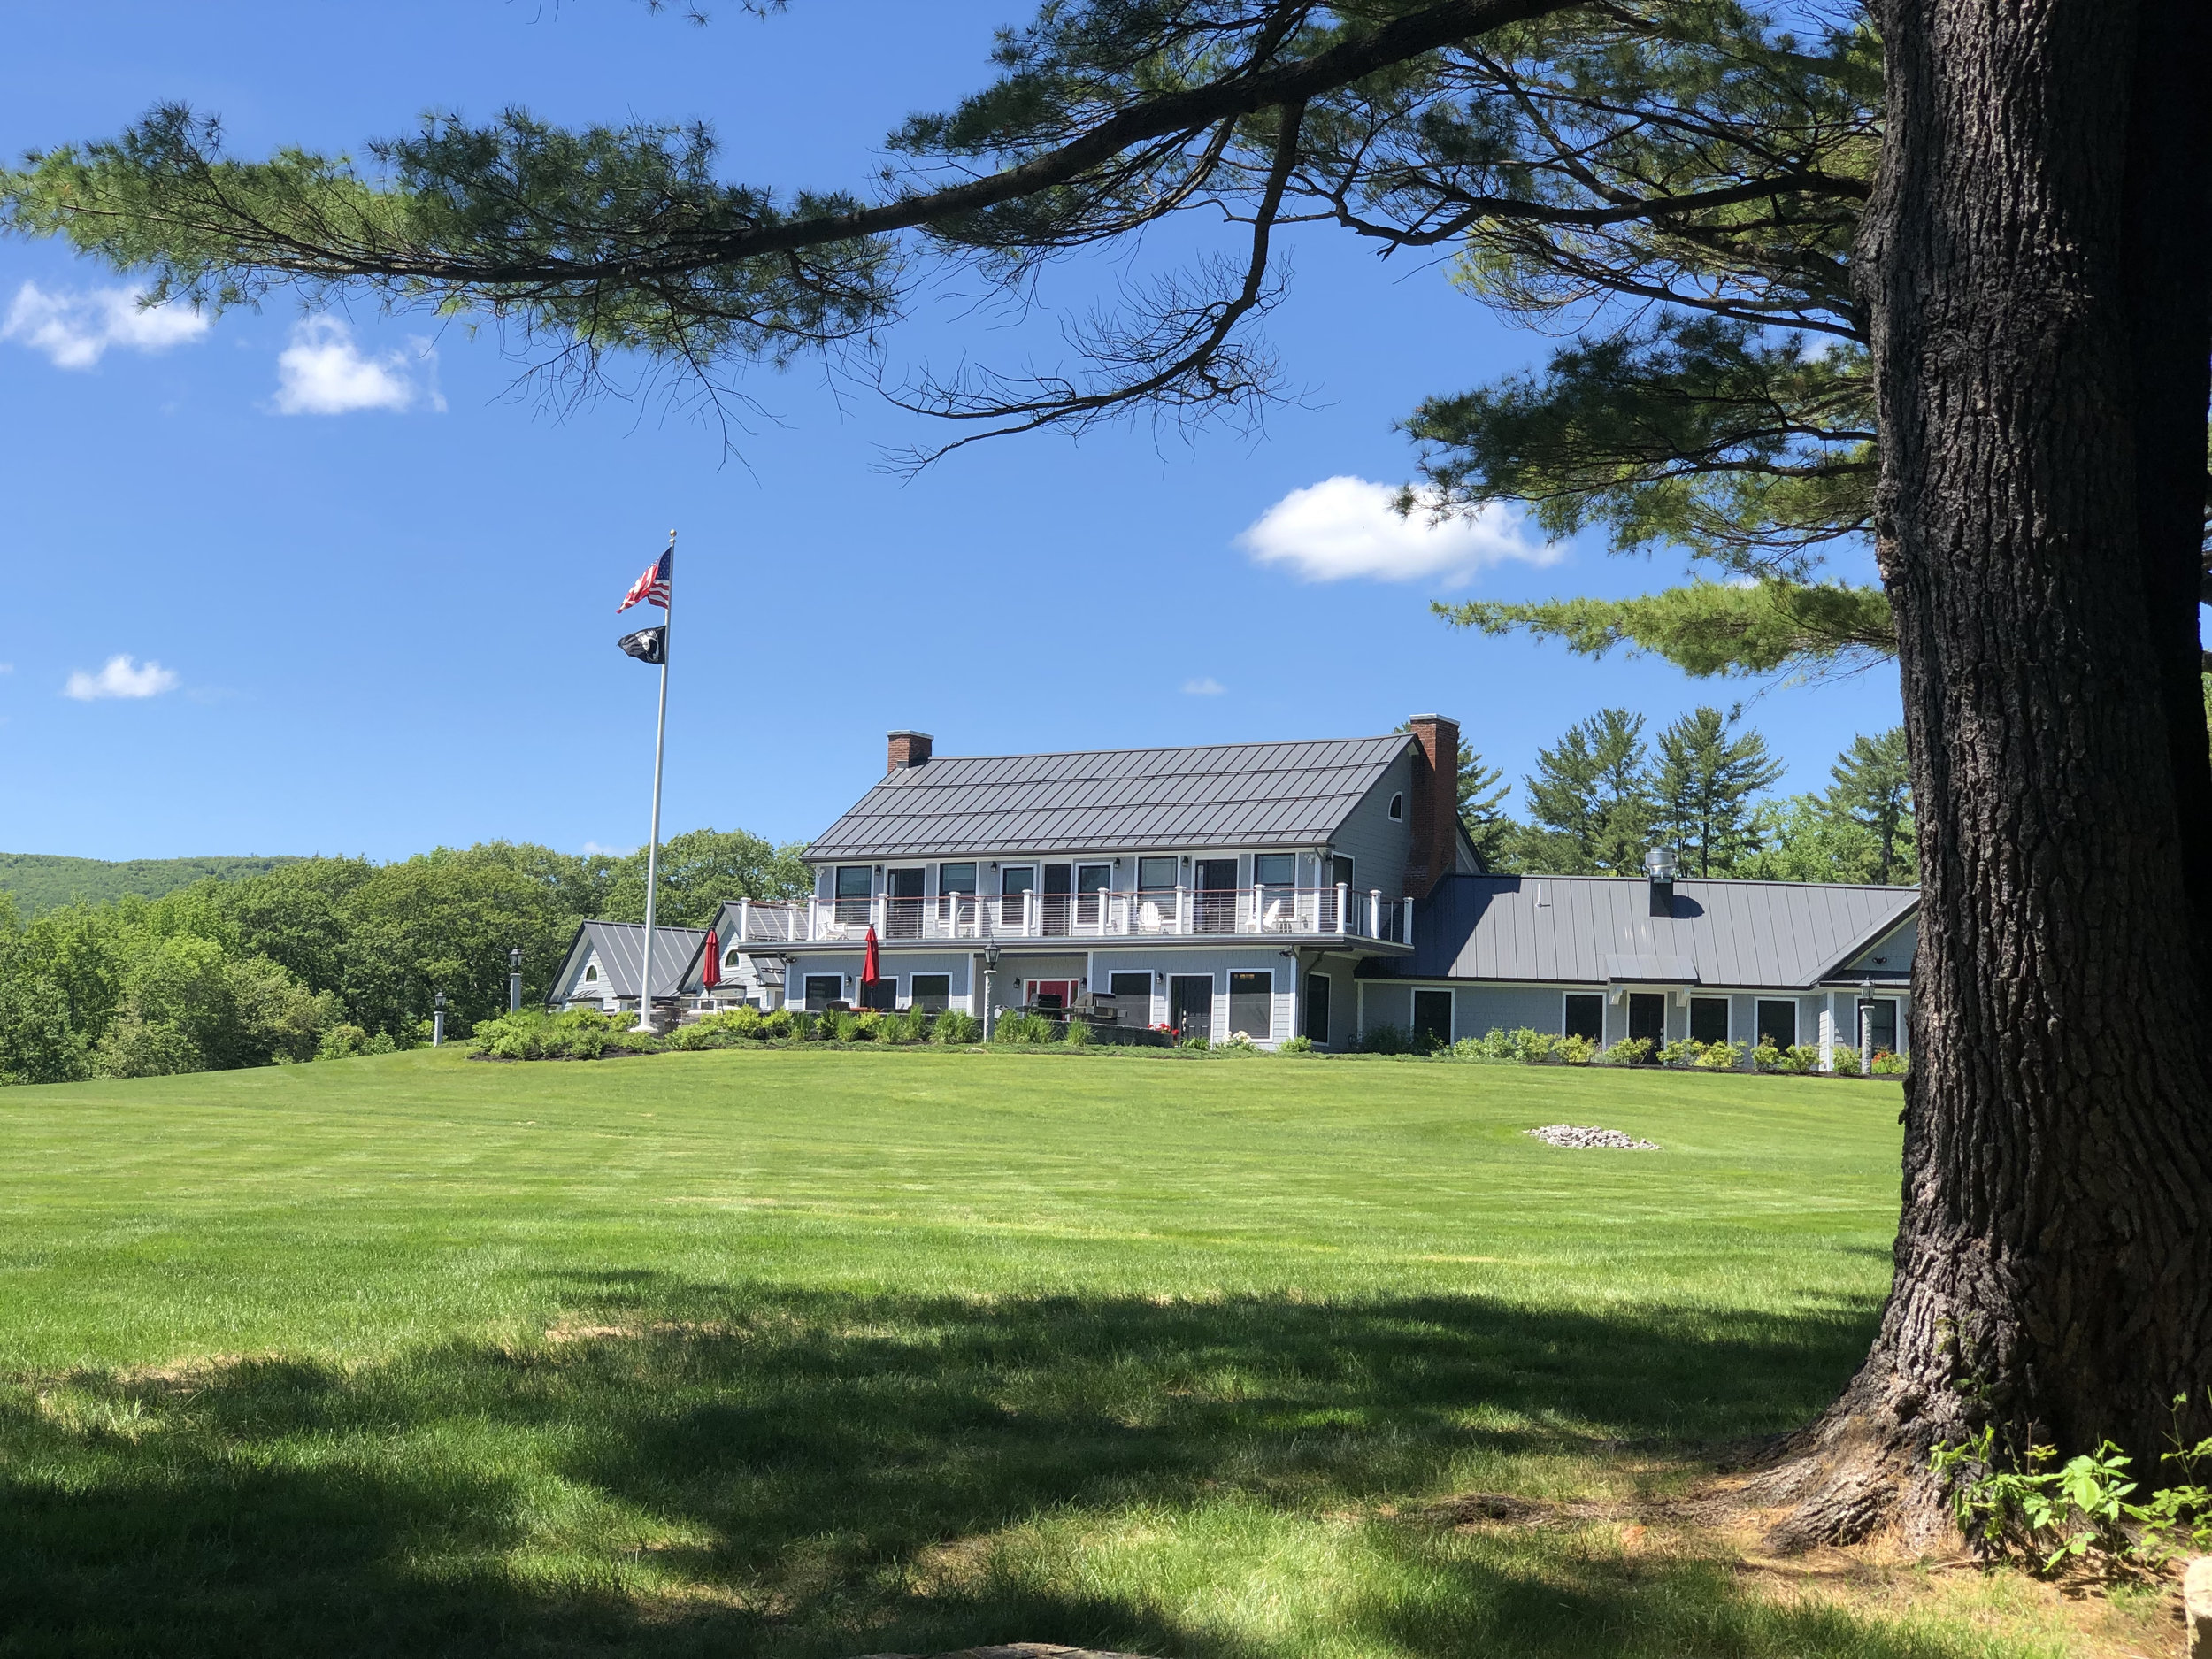 The Maine Chance Lodge renovated and turned into the Travis Mills Foundation Veteran Retreat.